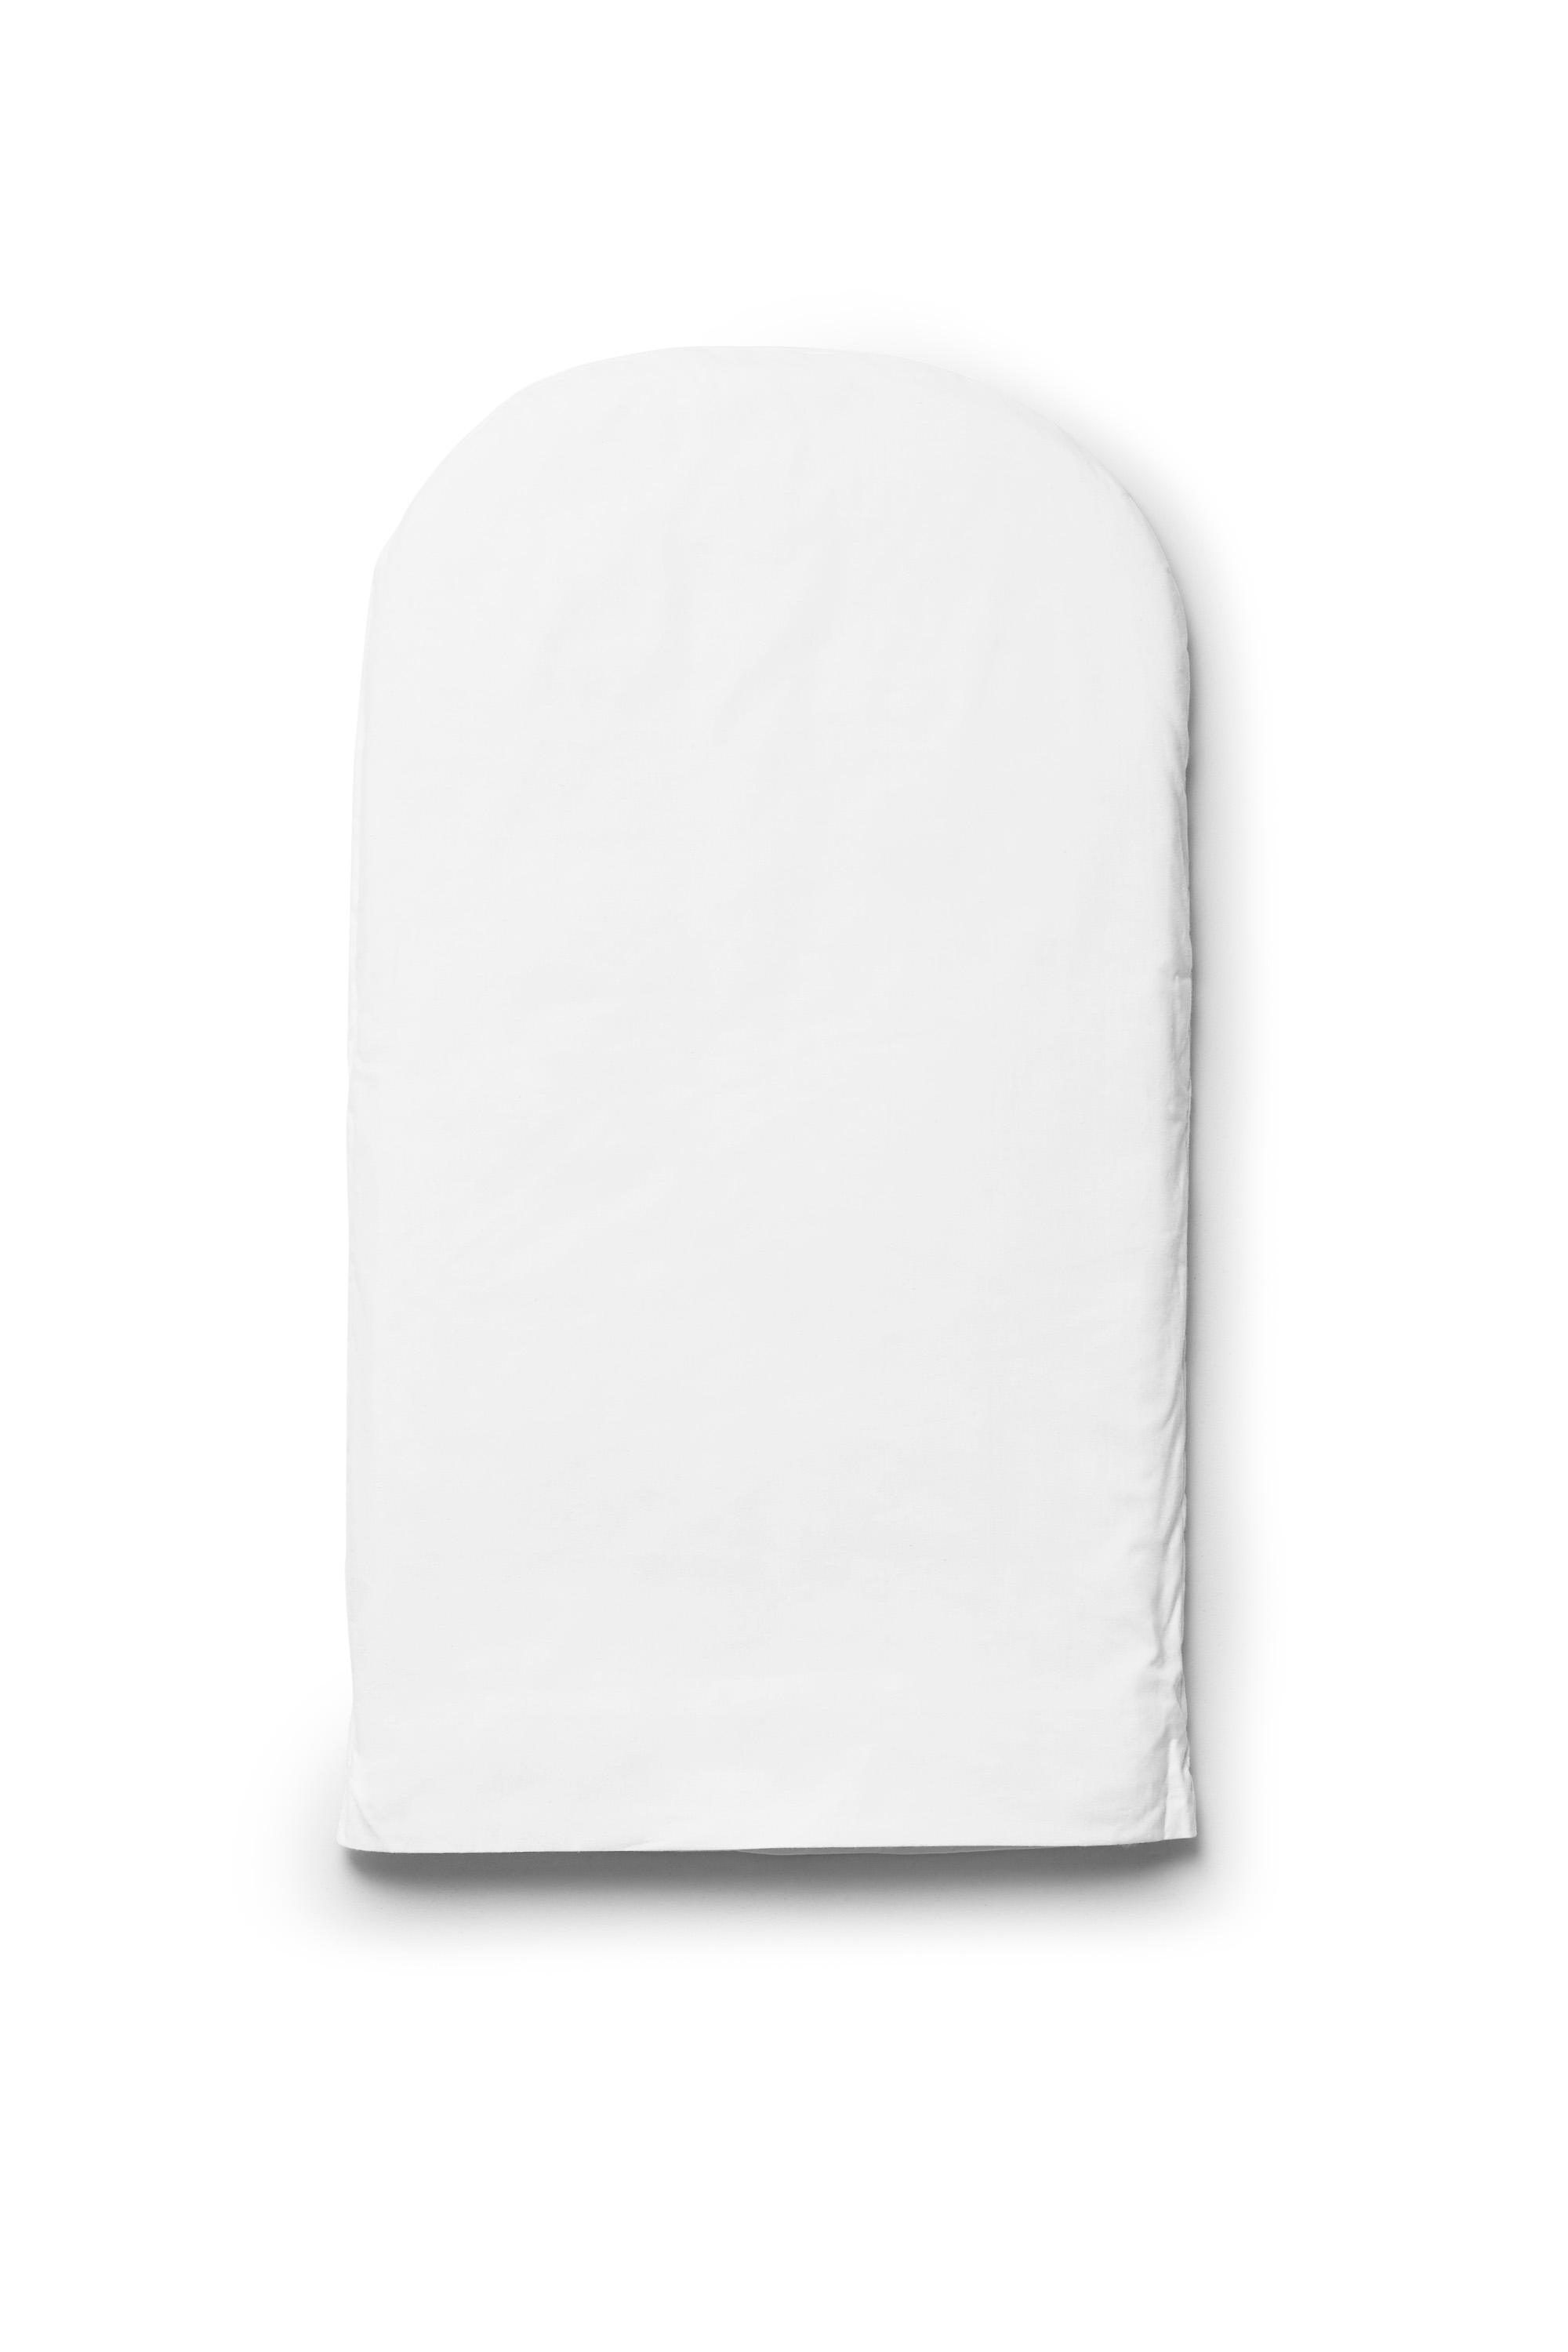 Enfant Terrible Sleepyhead Spare Mattress Pad For